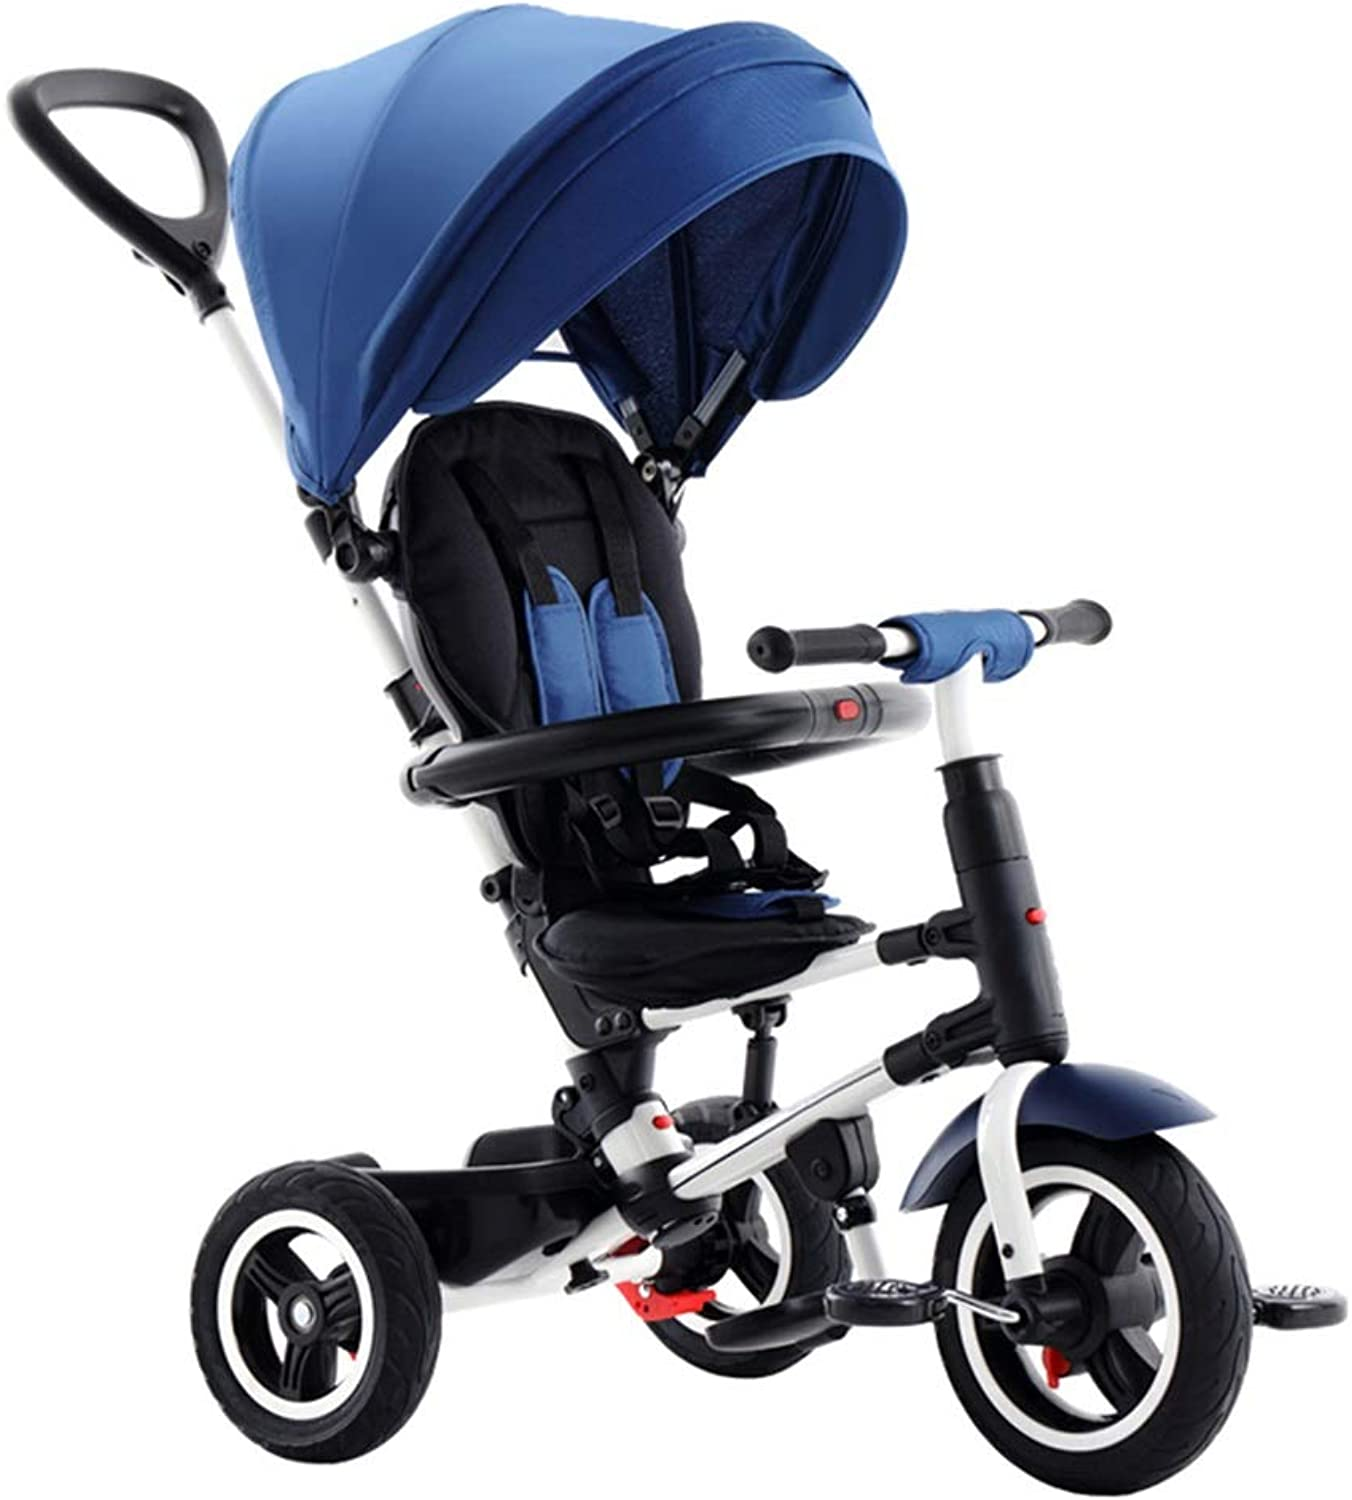 YUMEIGE Kids' Tricycles Kids Tricycle 16 Years Old Birthday Gift TricycleLoad Weight 25 kg Kids Strollers Toddler Trike with Awning (color  bluee Purple) Available